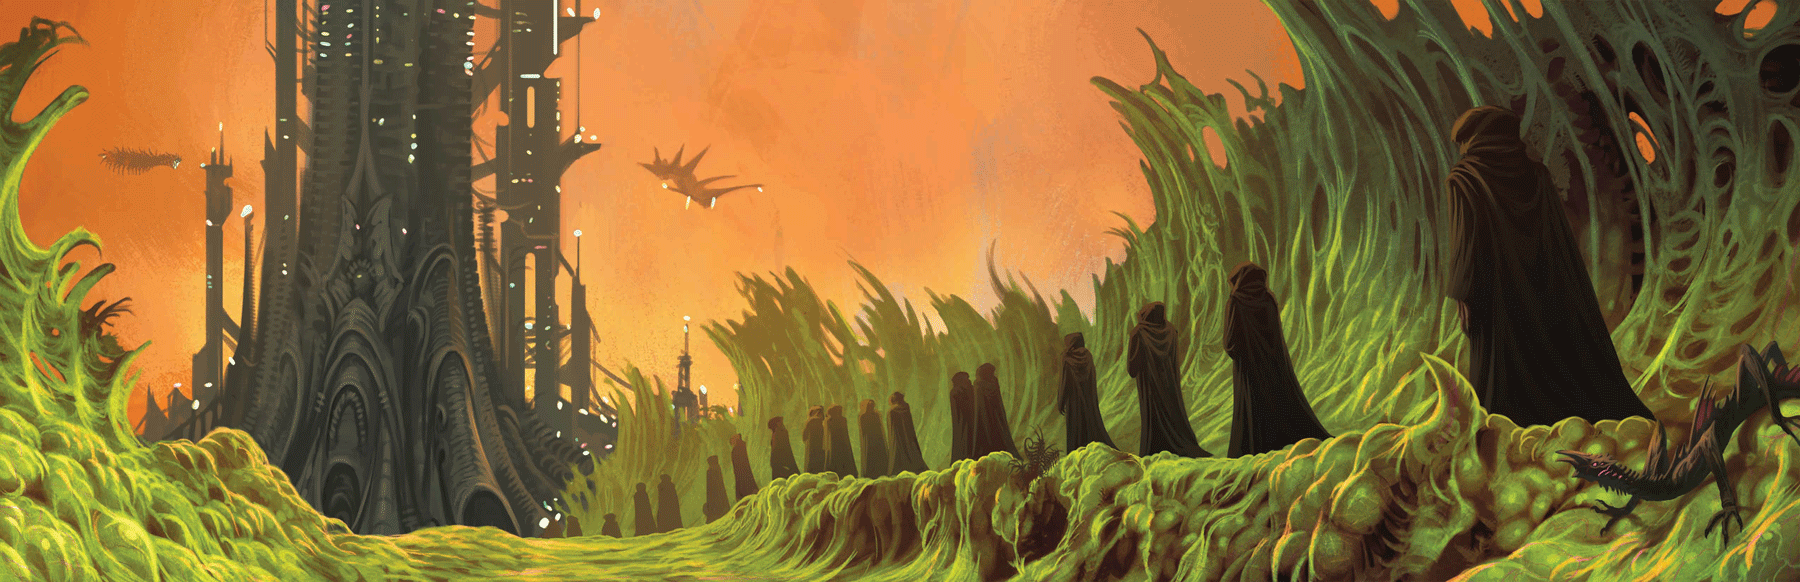 A procession of robed humanoids march along an alien planet's surface toward a looming structure made of dark stone and bone.